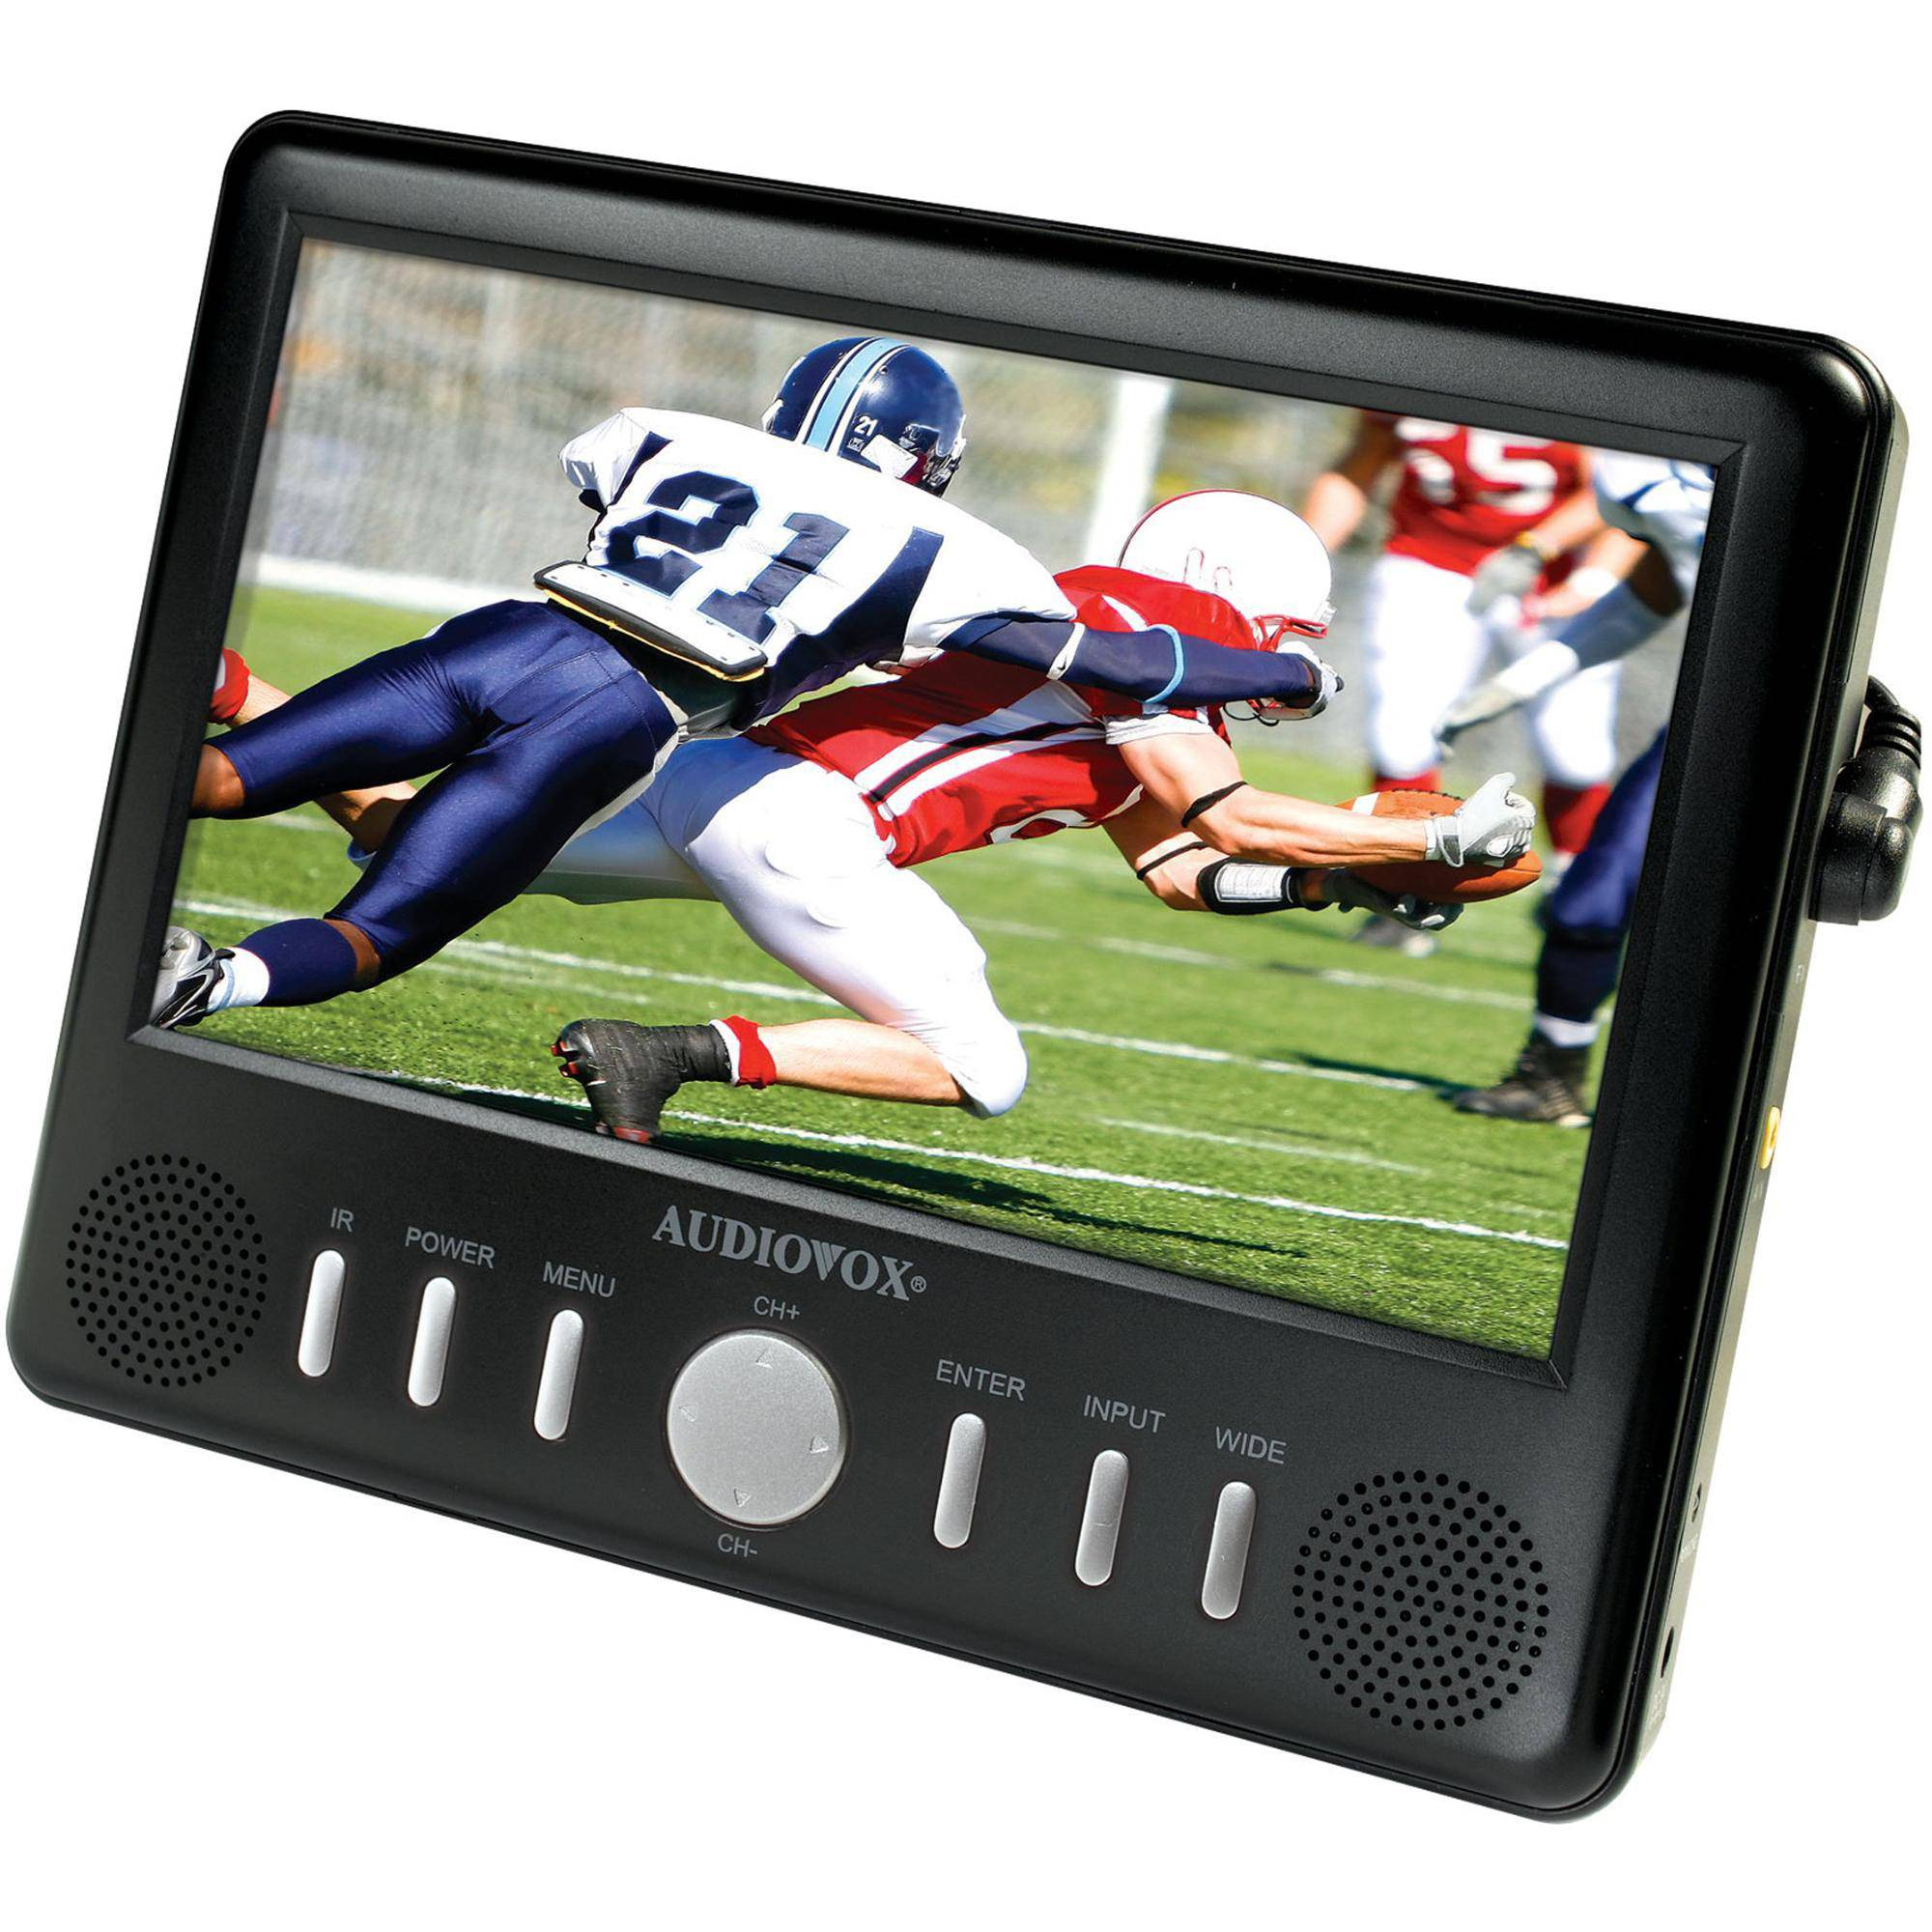 hight resolution of audiovox fpe709 7 inch portable digital television